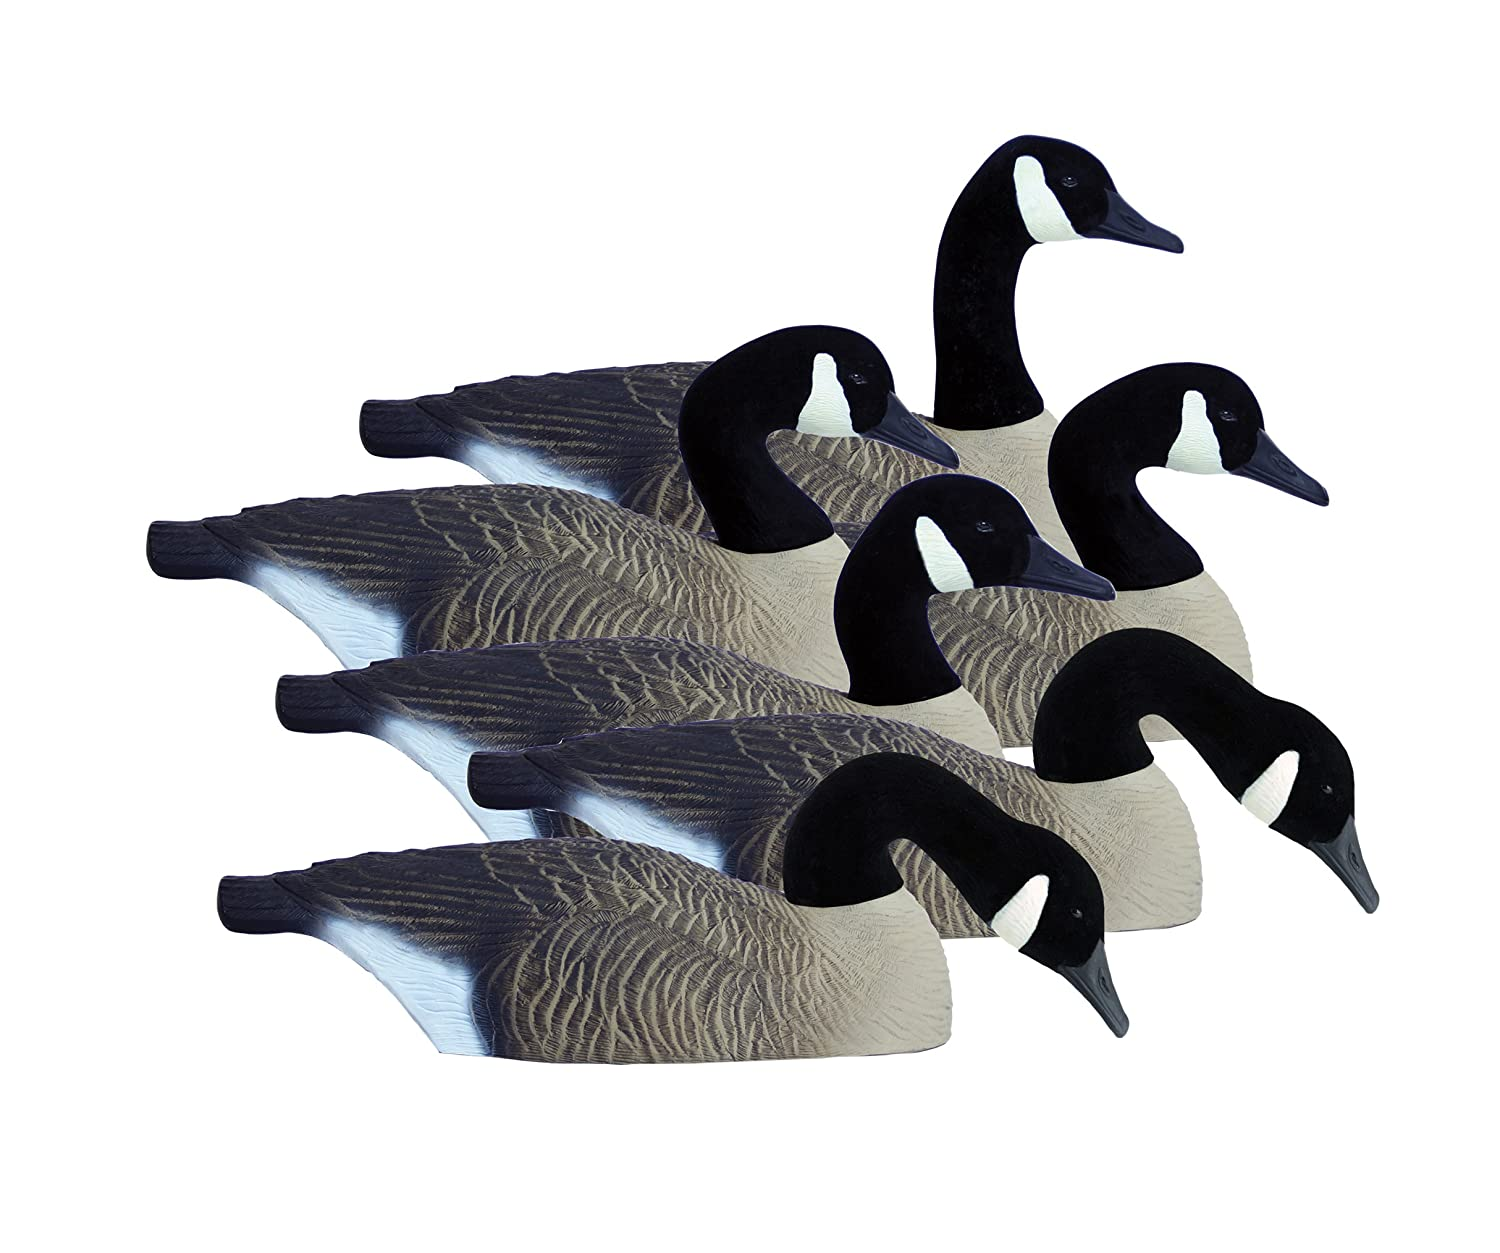 b09e130a9b50 Amazon.com   Higdon Outdoors Canada Full-Size Half Shell Hunting Decoys    Hunting Decoys   Sports   Outdoors